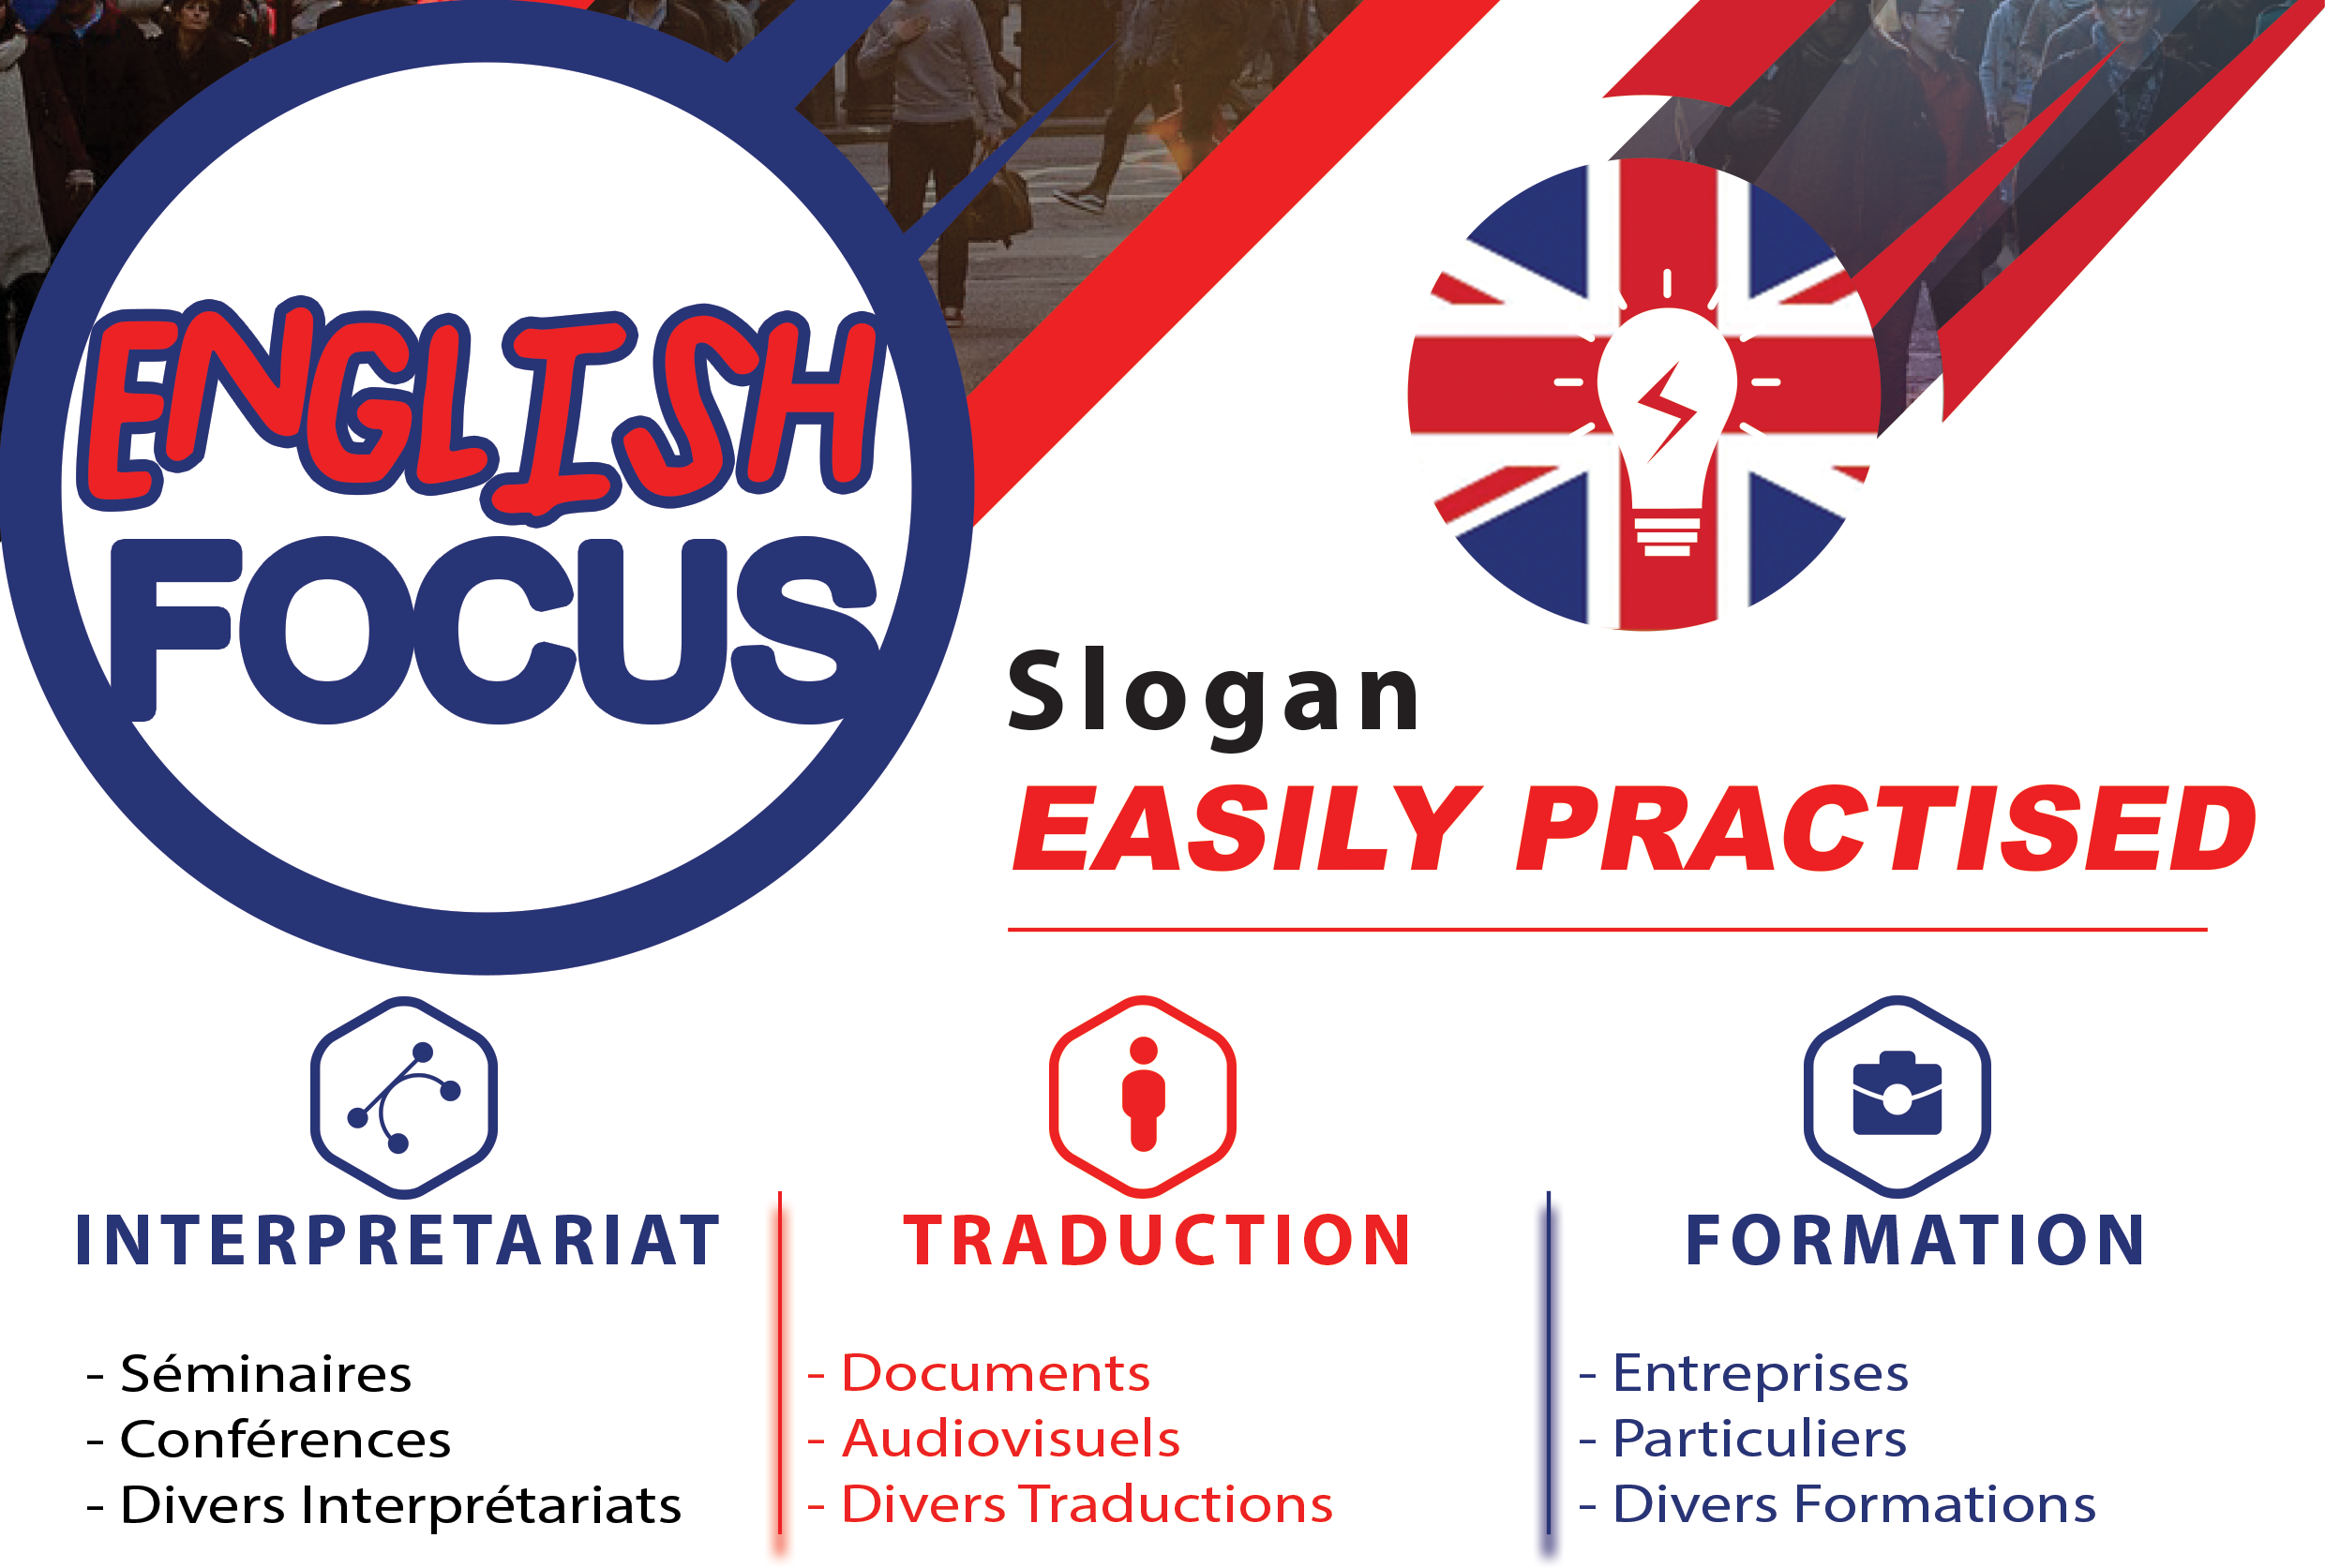 English Focus